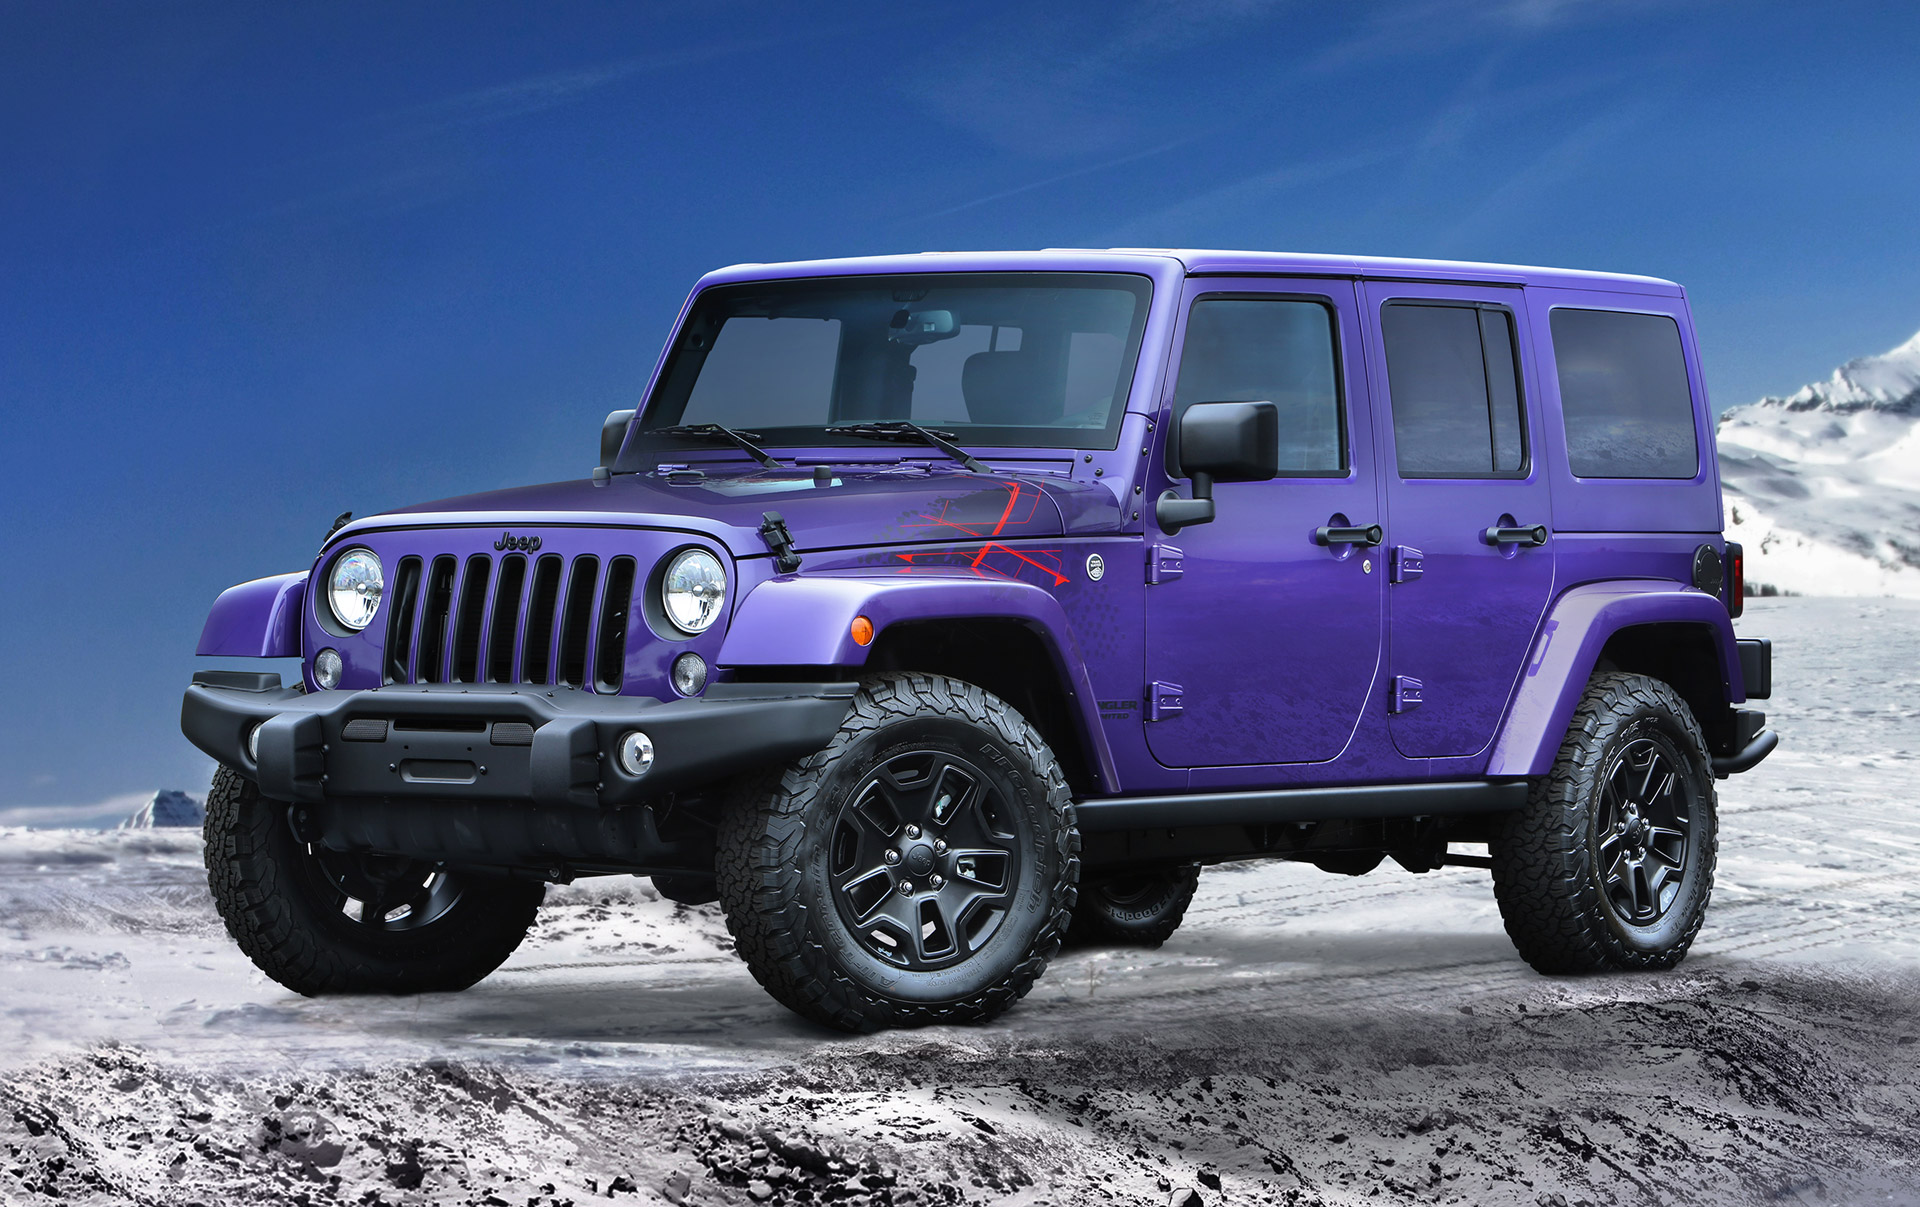 lease gallery pricing wrangler texas and offers vlp jeep finance tx for new austin image sale